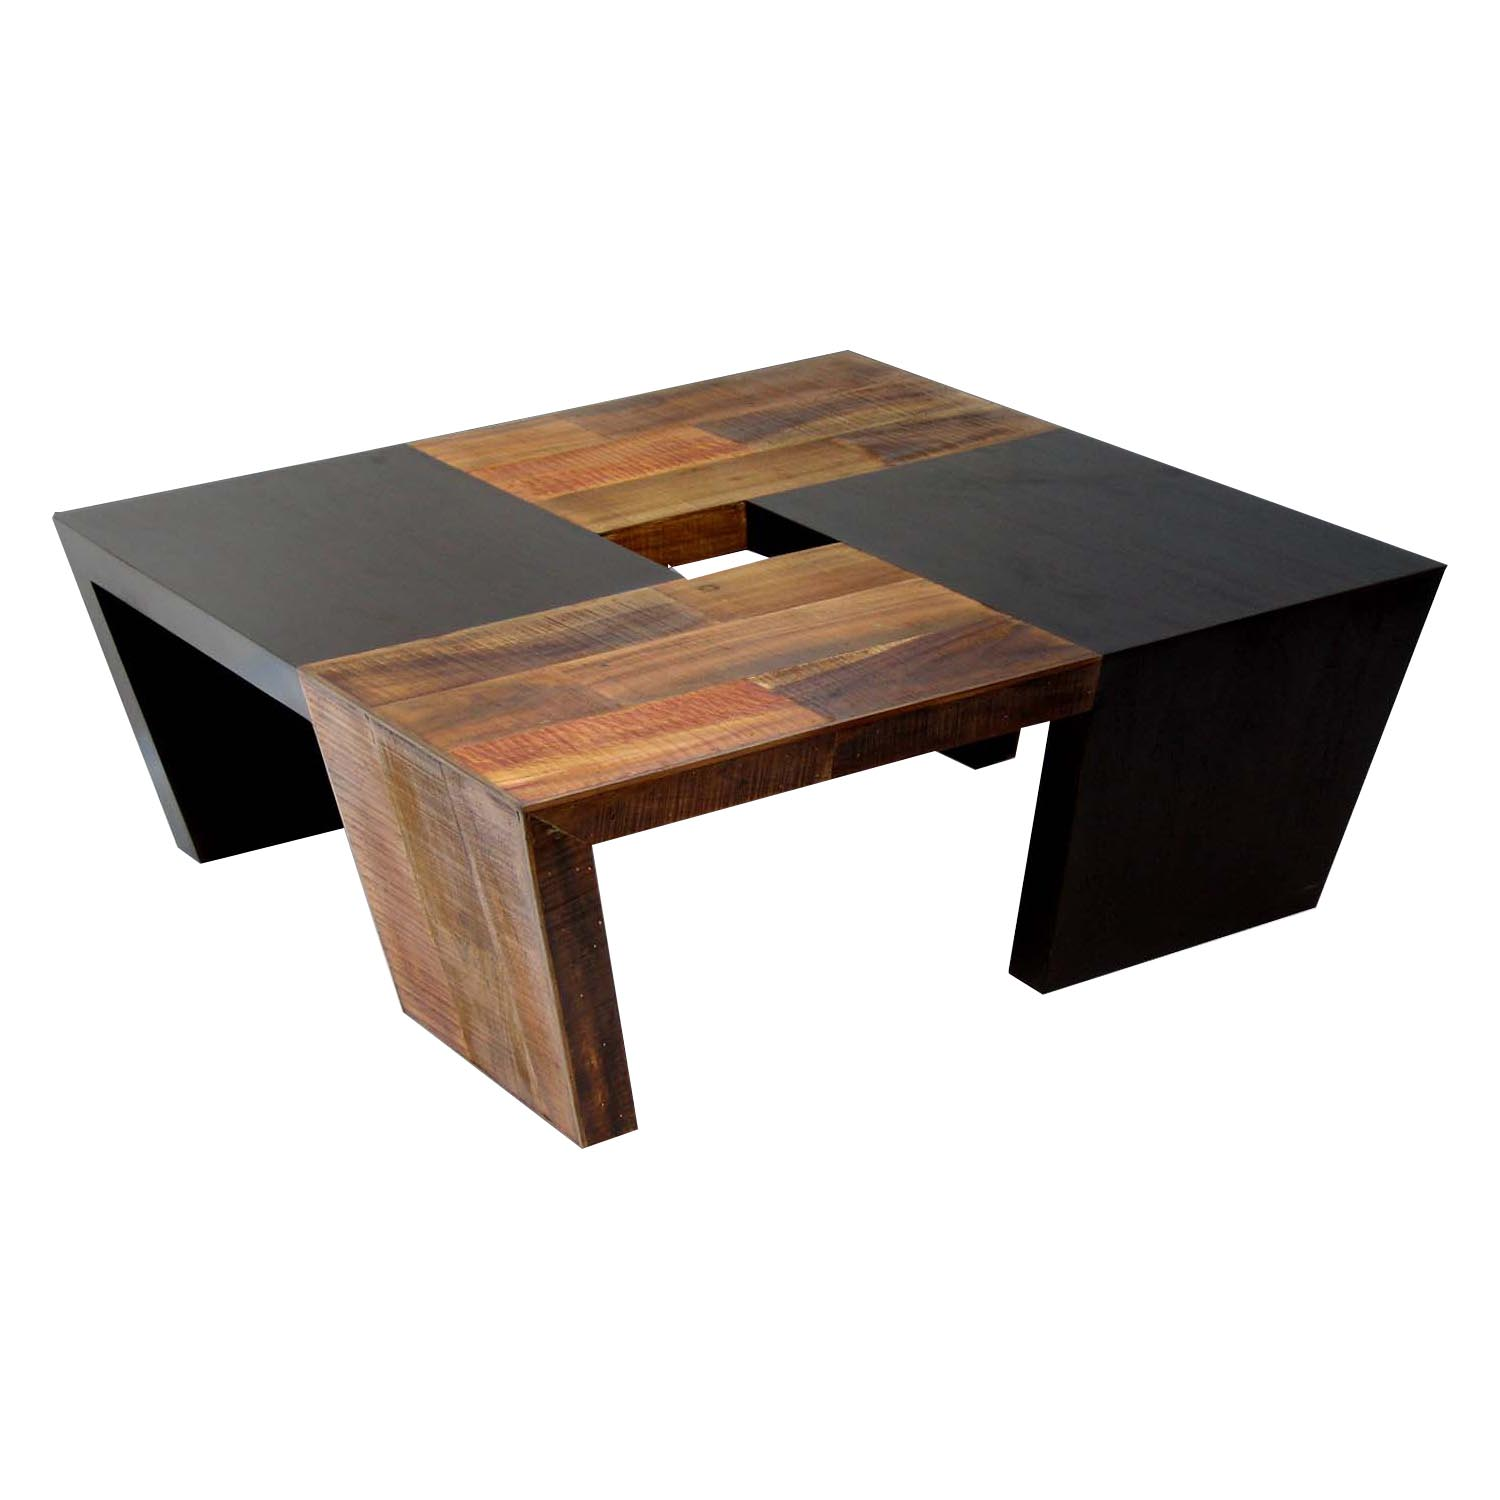 Modern wood coffee table coffee table design ideas for Modern end table ideas